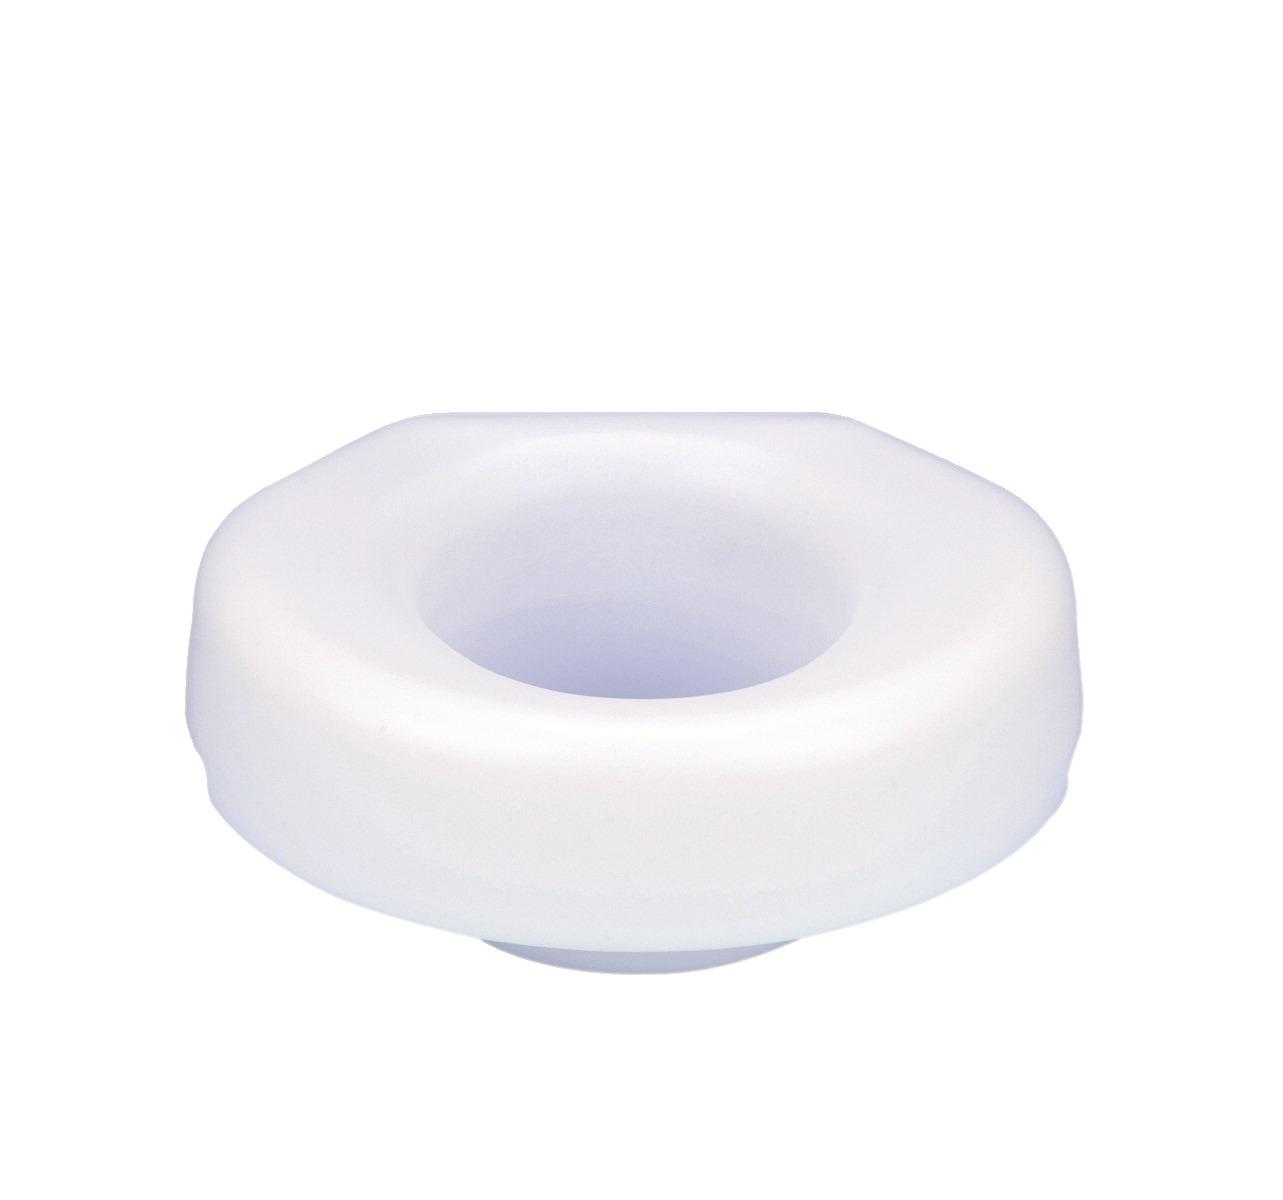 Economy Elevated Toilet Seat, Bolt-down Bracket